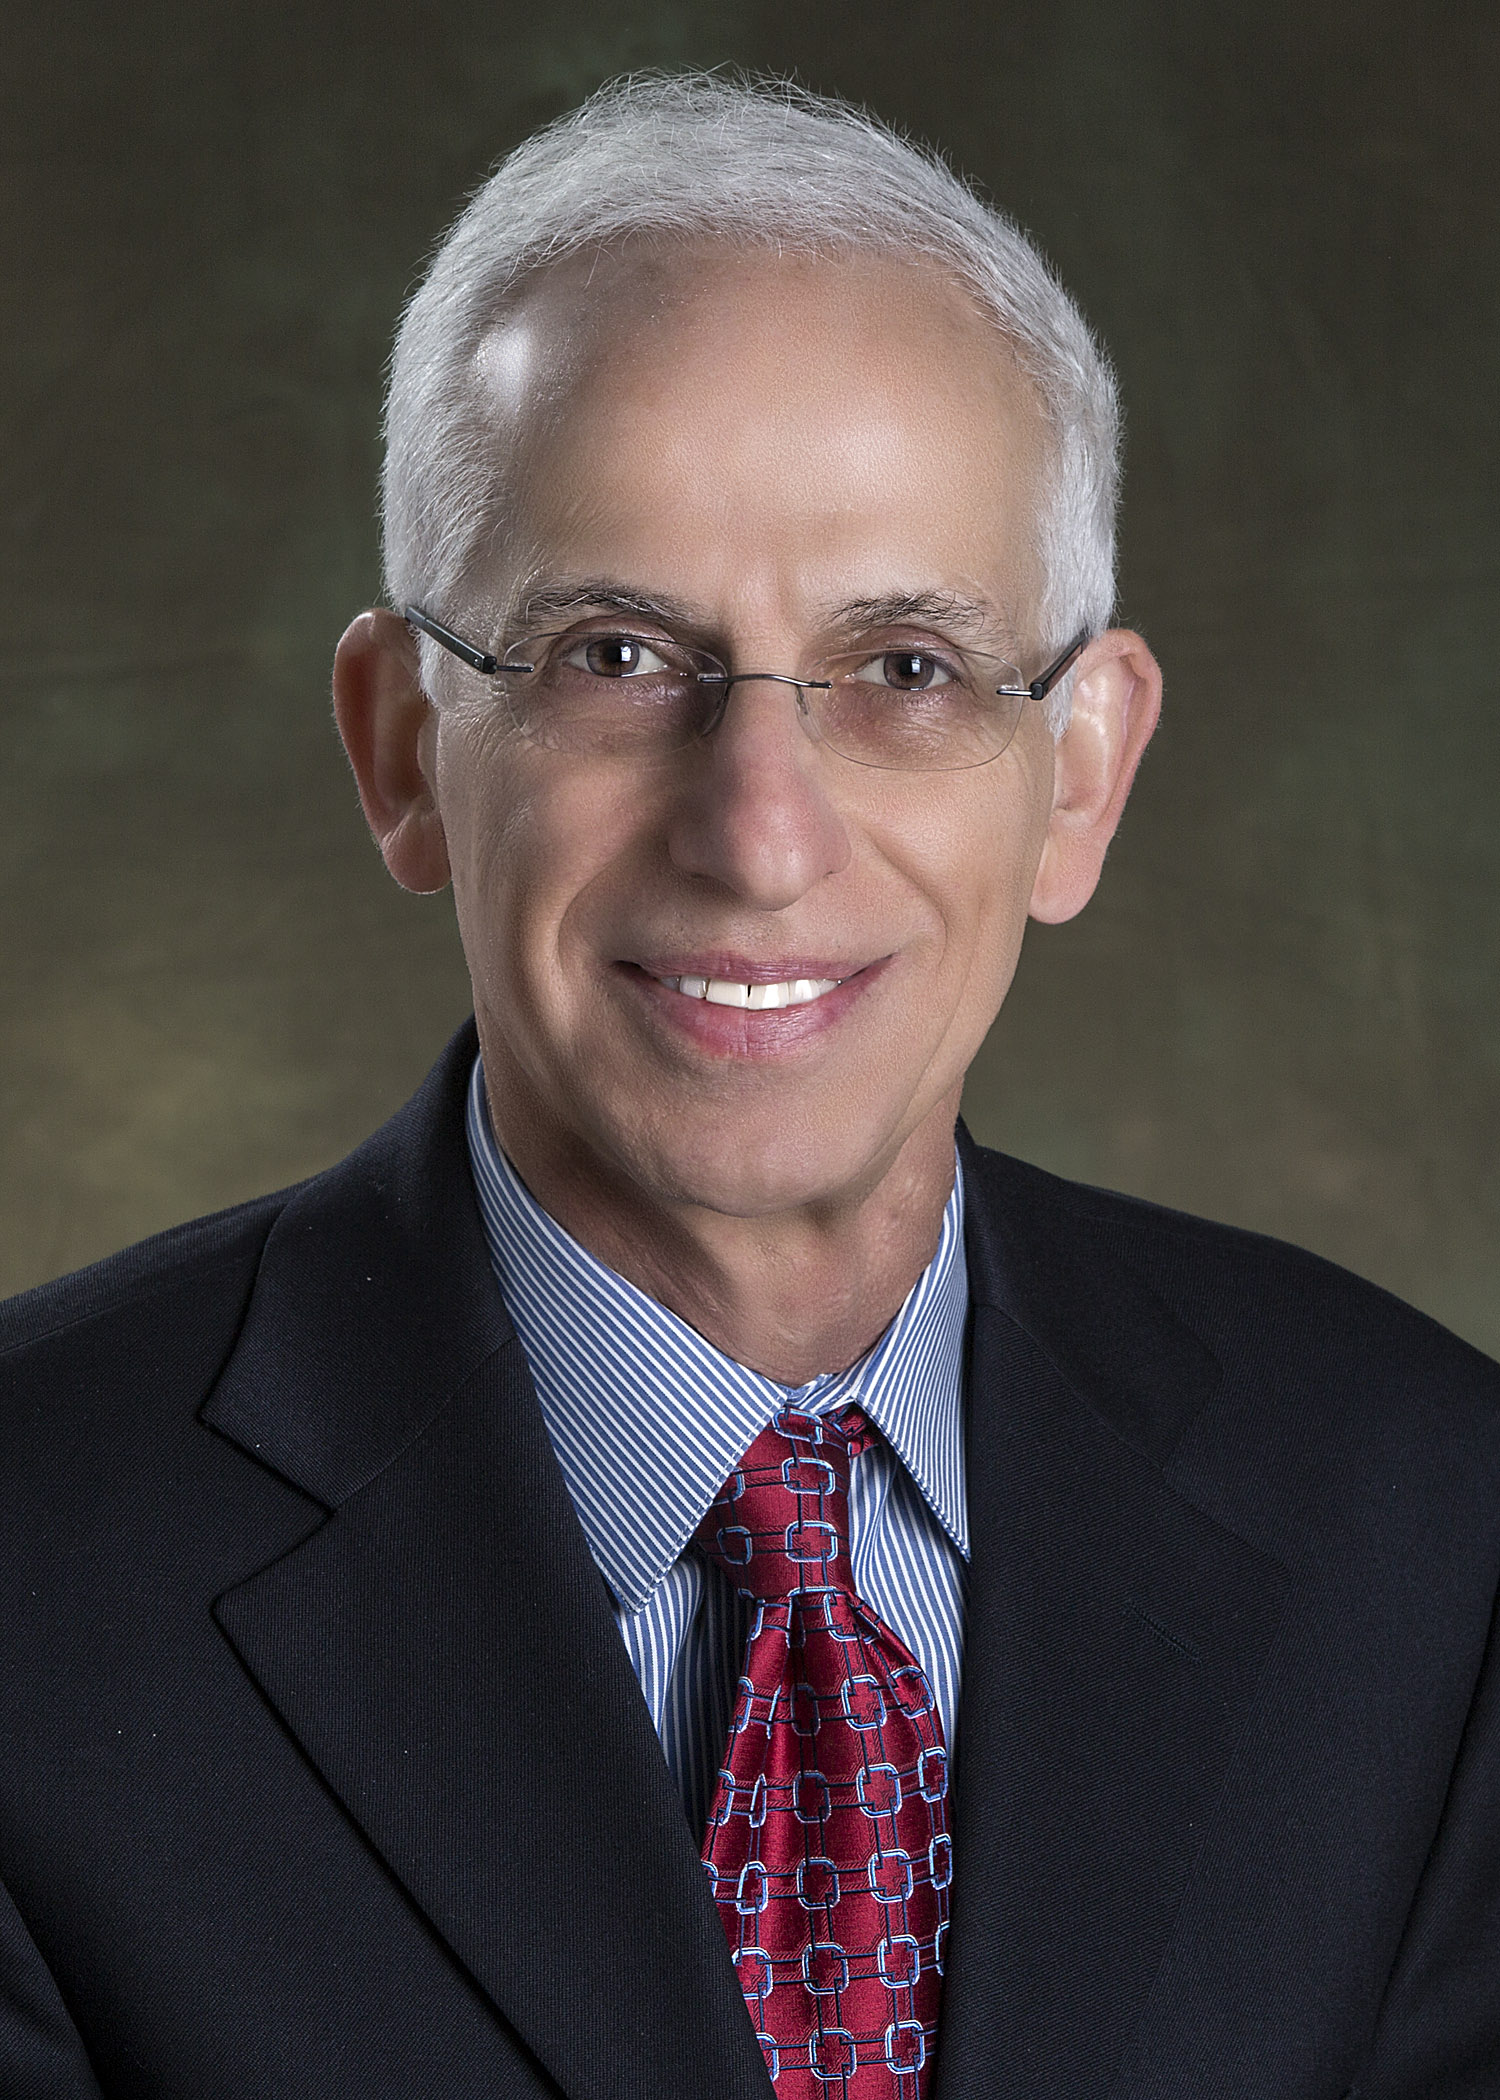 George Grunberger, MD, FACP, FACE, chairman at Grunberger Diabetes Institute in Bloomfield Hills, Michigan, AACE member and AACE immediate past president